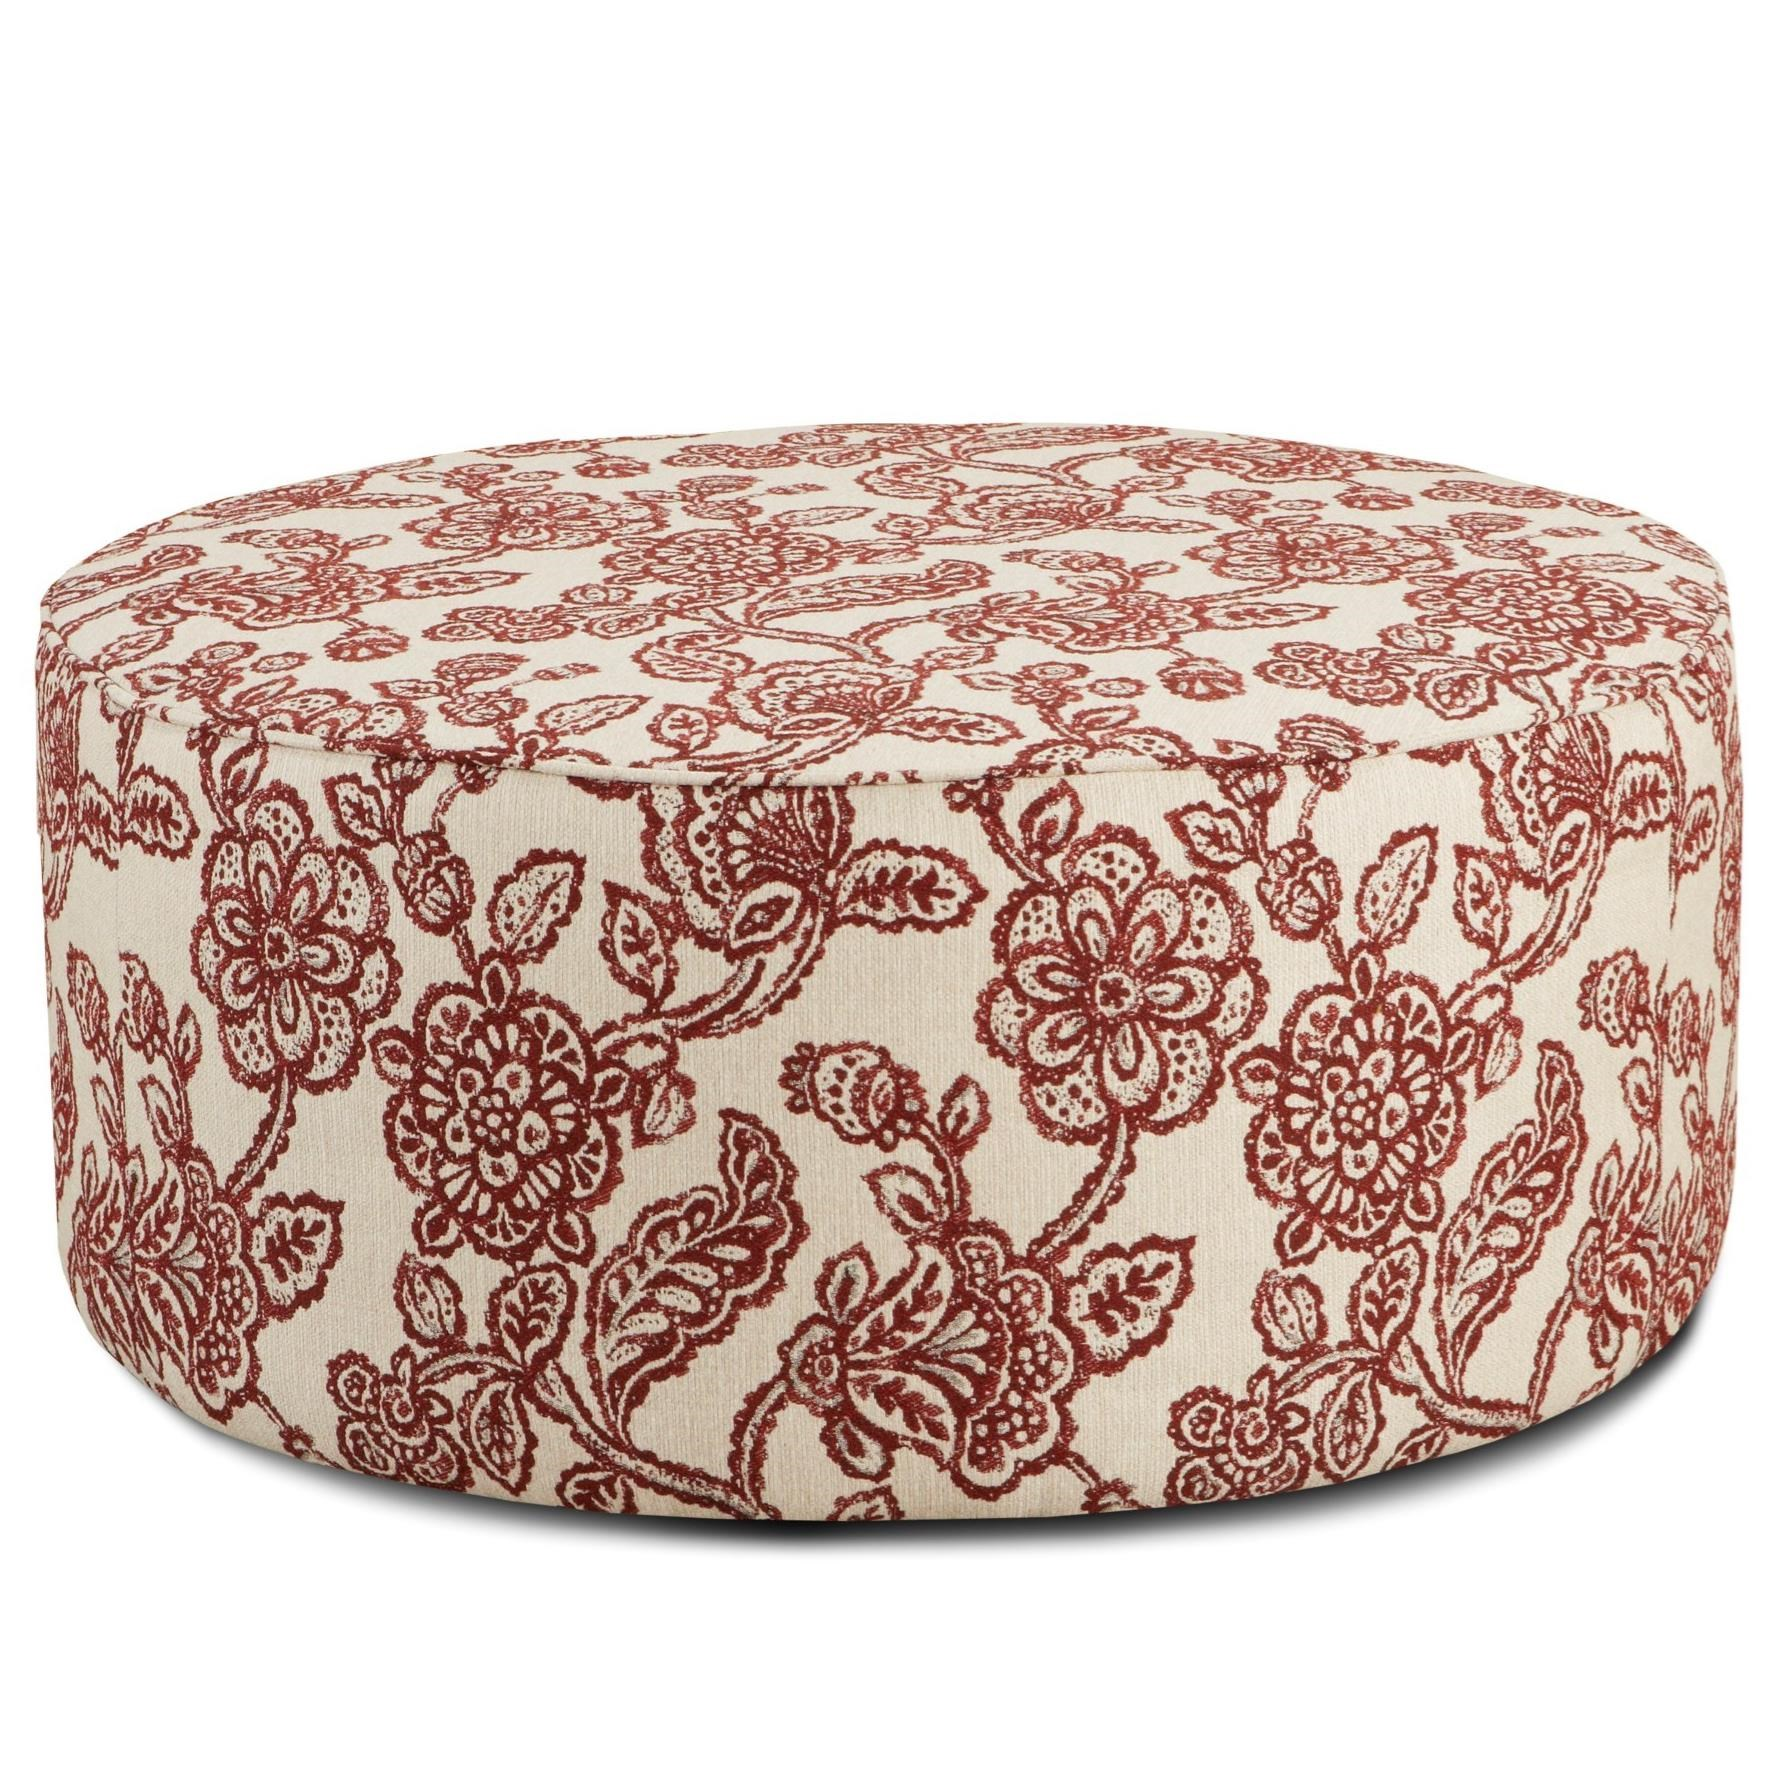 Fusion Furniture 140 Cocktail Ottoman - Item Number: 140Antoinette Crimson